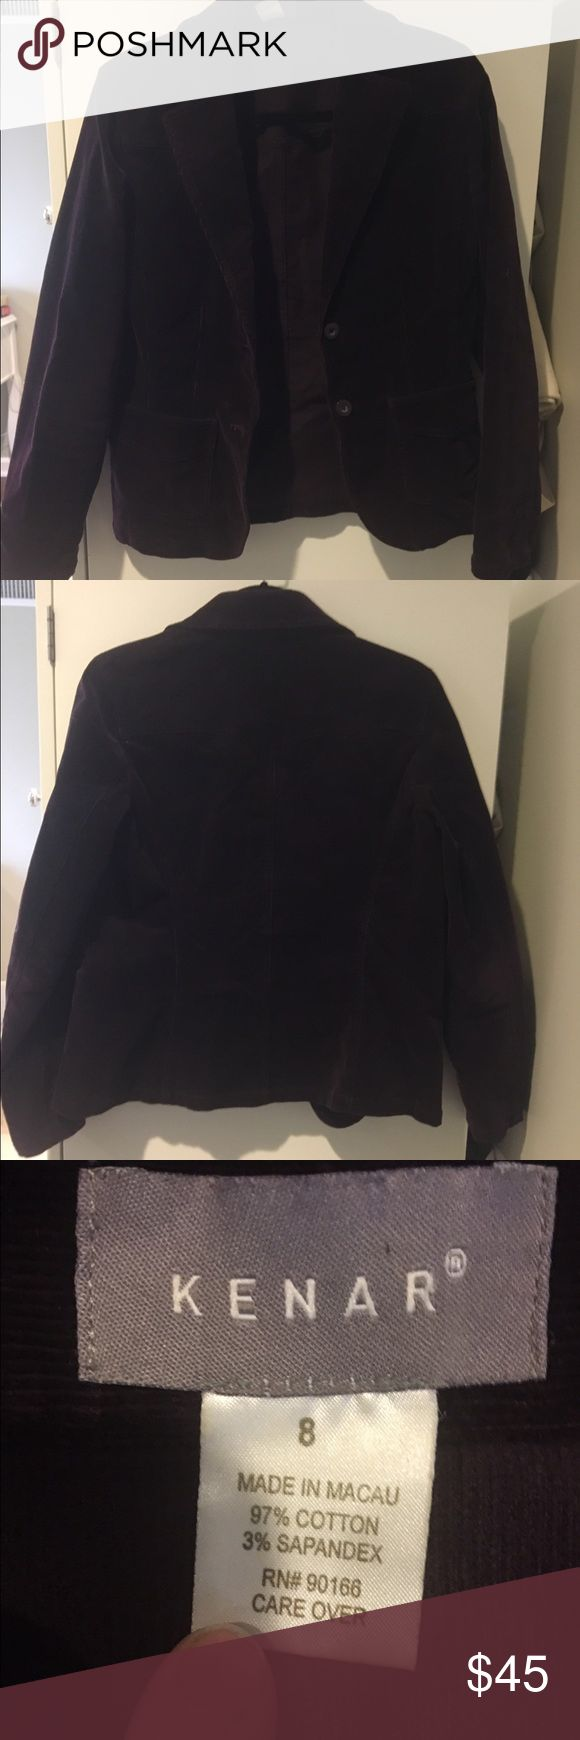 Kenar Corduroy Blazer Deep purple corduroy Blazer with two Button front closure. Previously worn in great condition! Open to reasonable offers through feature! Kenar Jackets & Coats Blazers